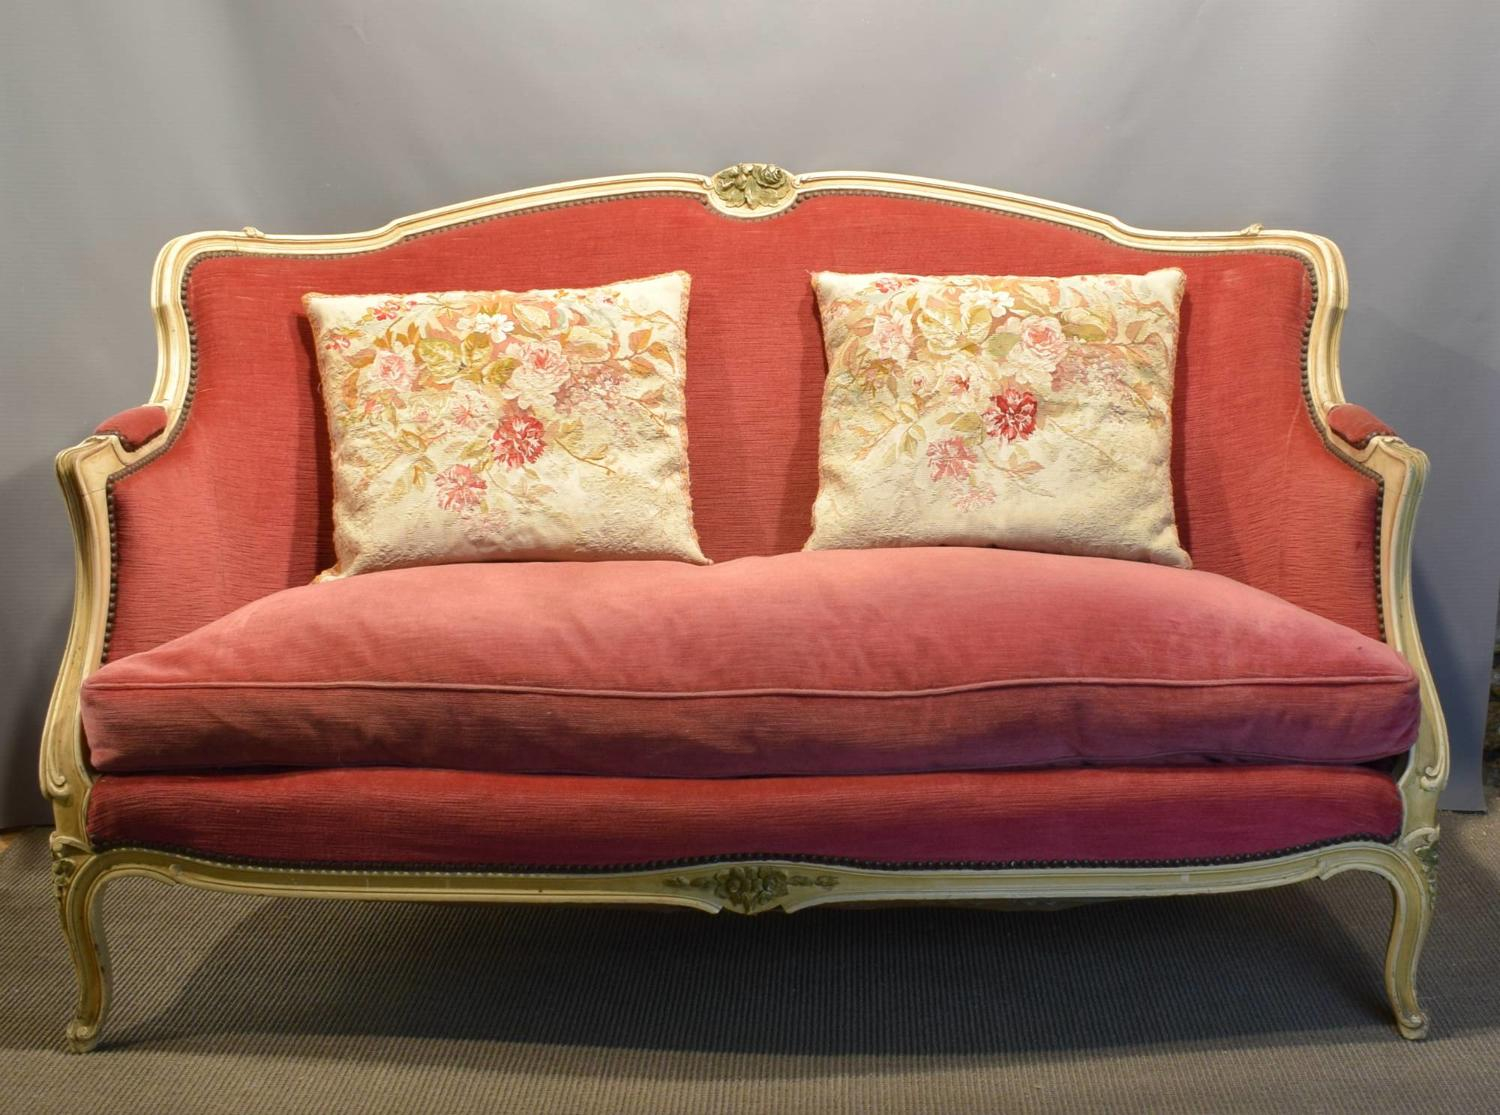 Vintage French Pink Velvet Sofa in Louis XV Style